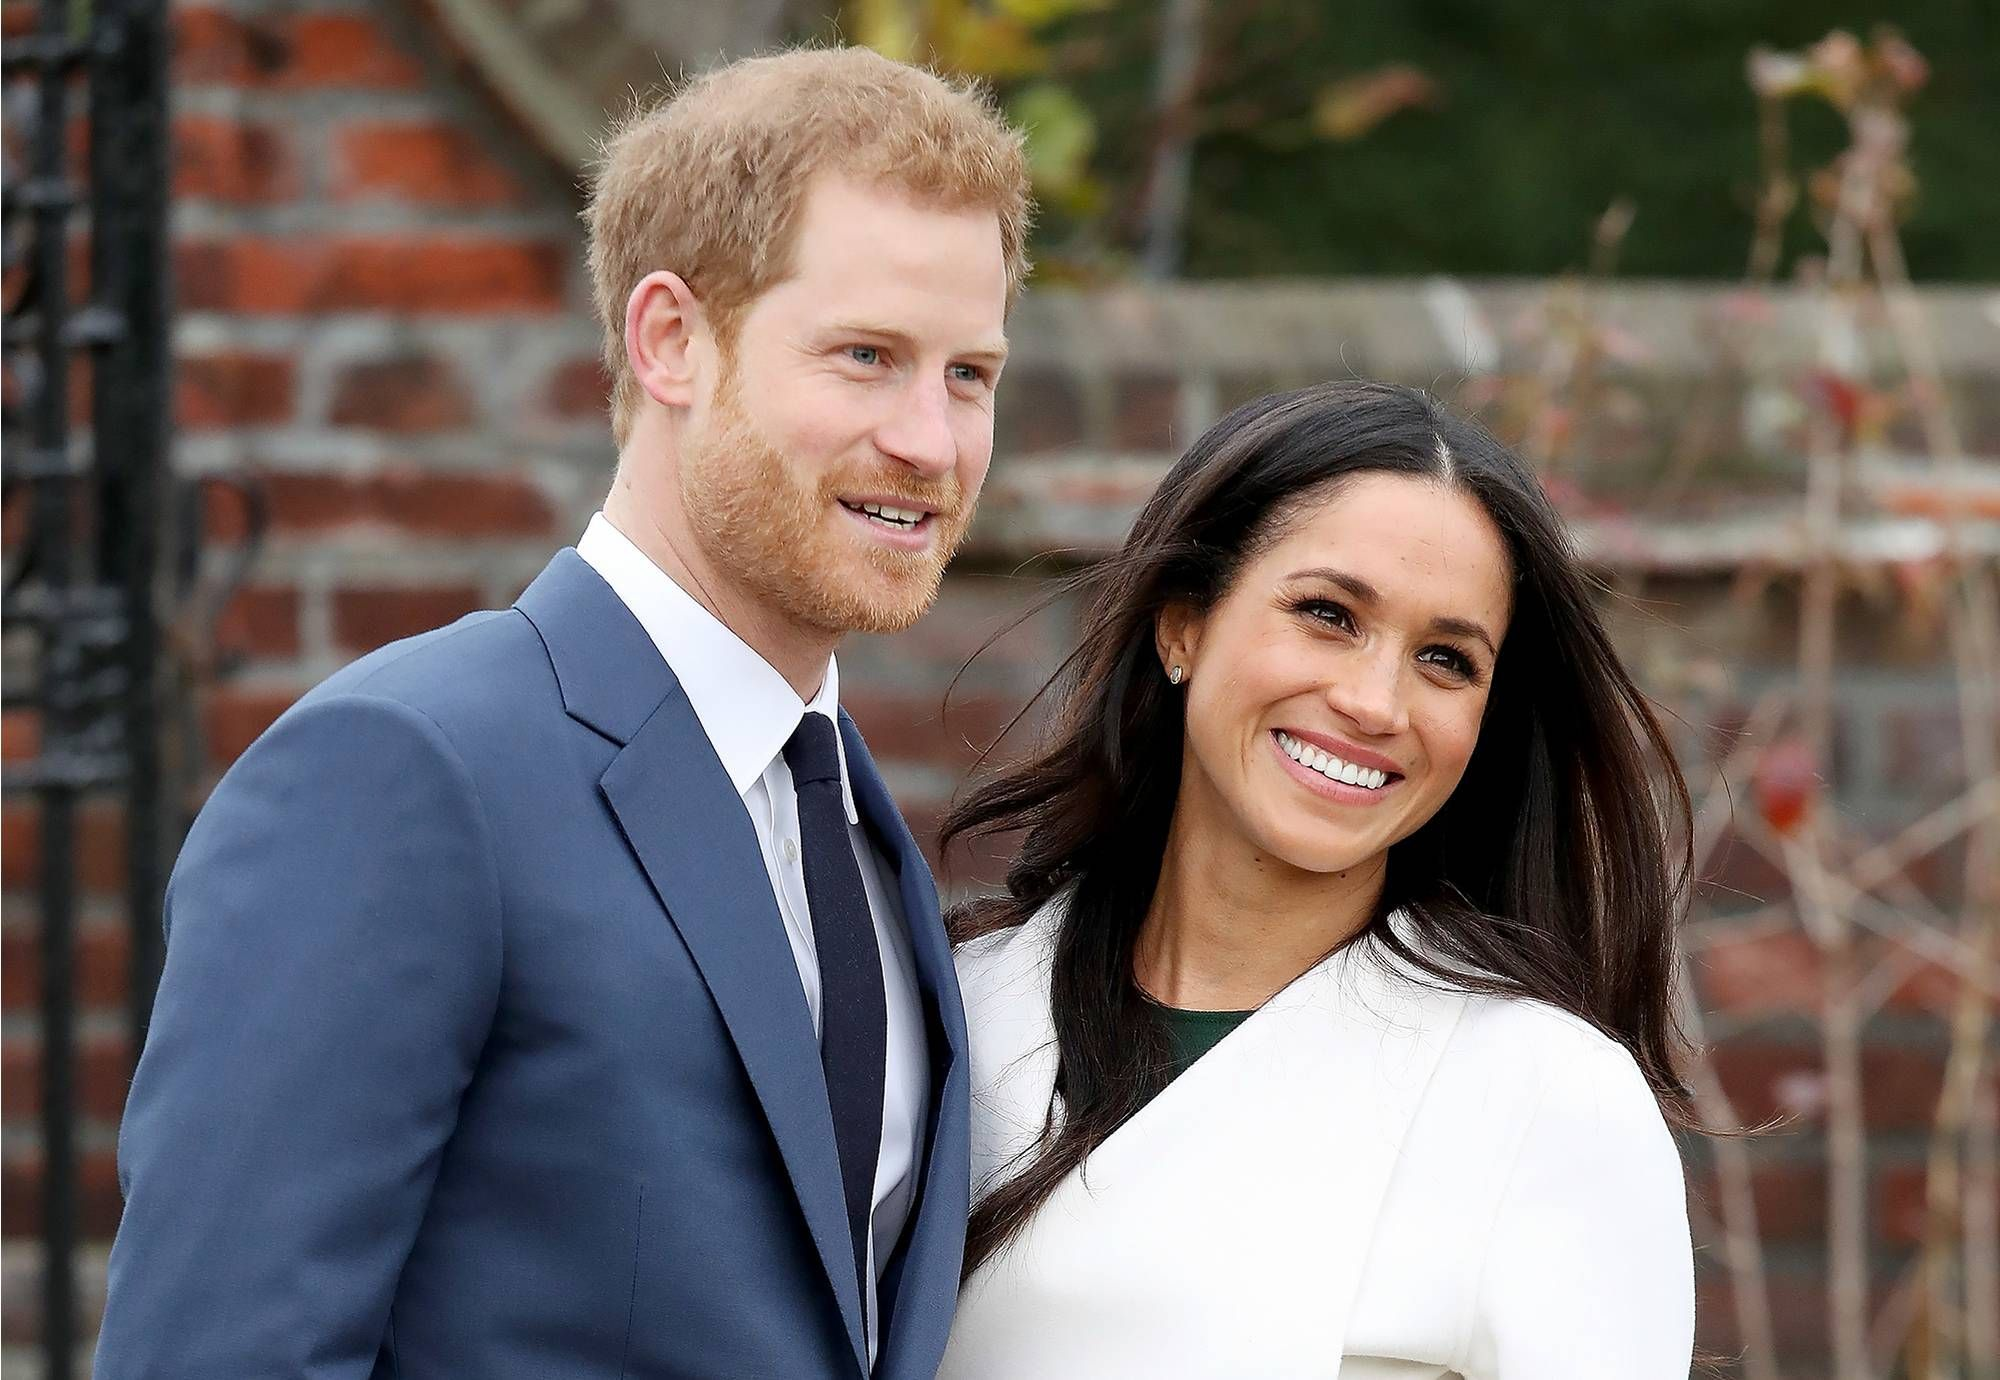 Prince Harry And Meghan Markle Speak Out On Their Royal Romance Meghan Markle Prince Harry Prince Harry And Meghan Markle Prince Harry